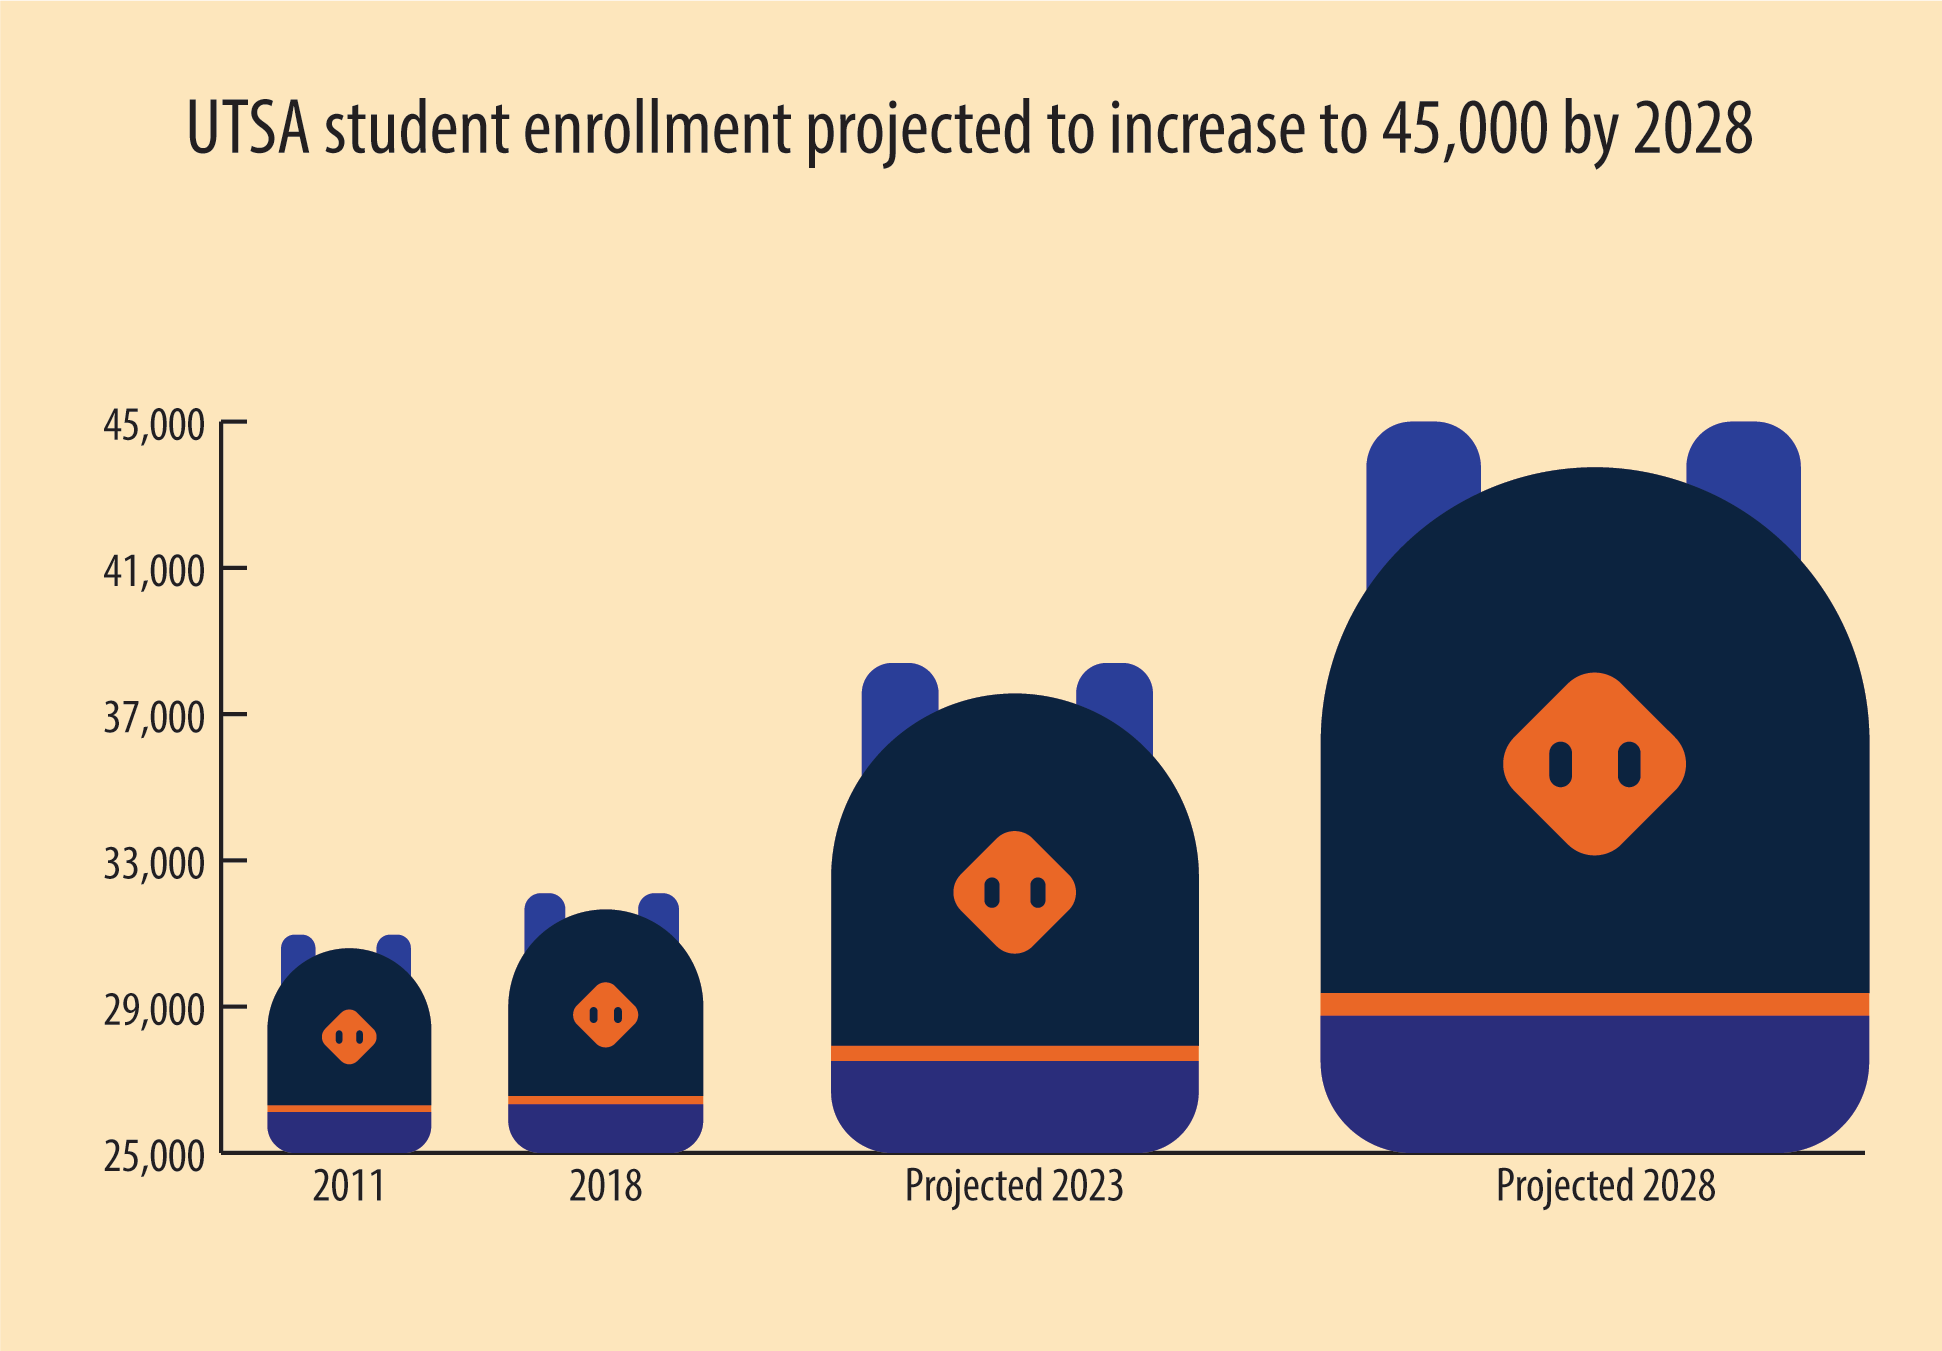 UTSA student enrollment projected to increase to 45,000 by 2028